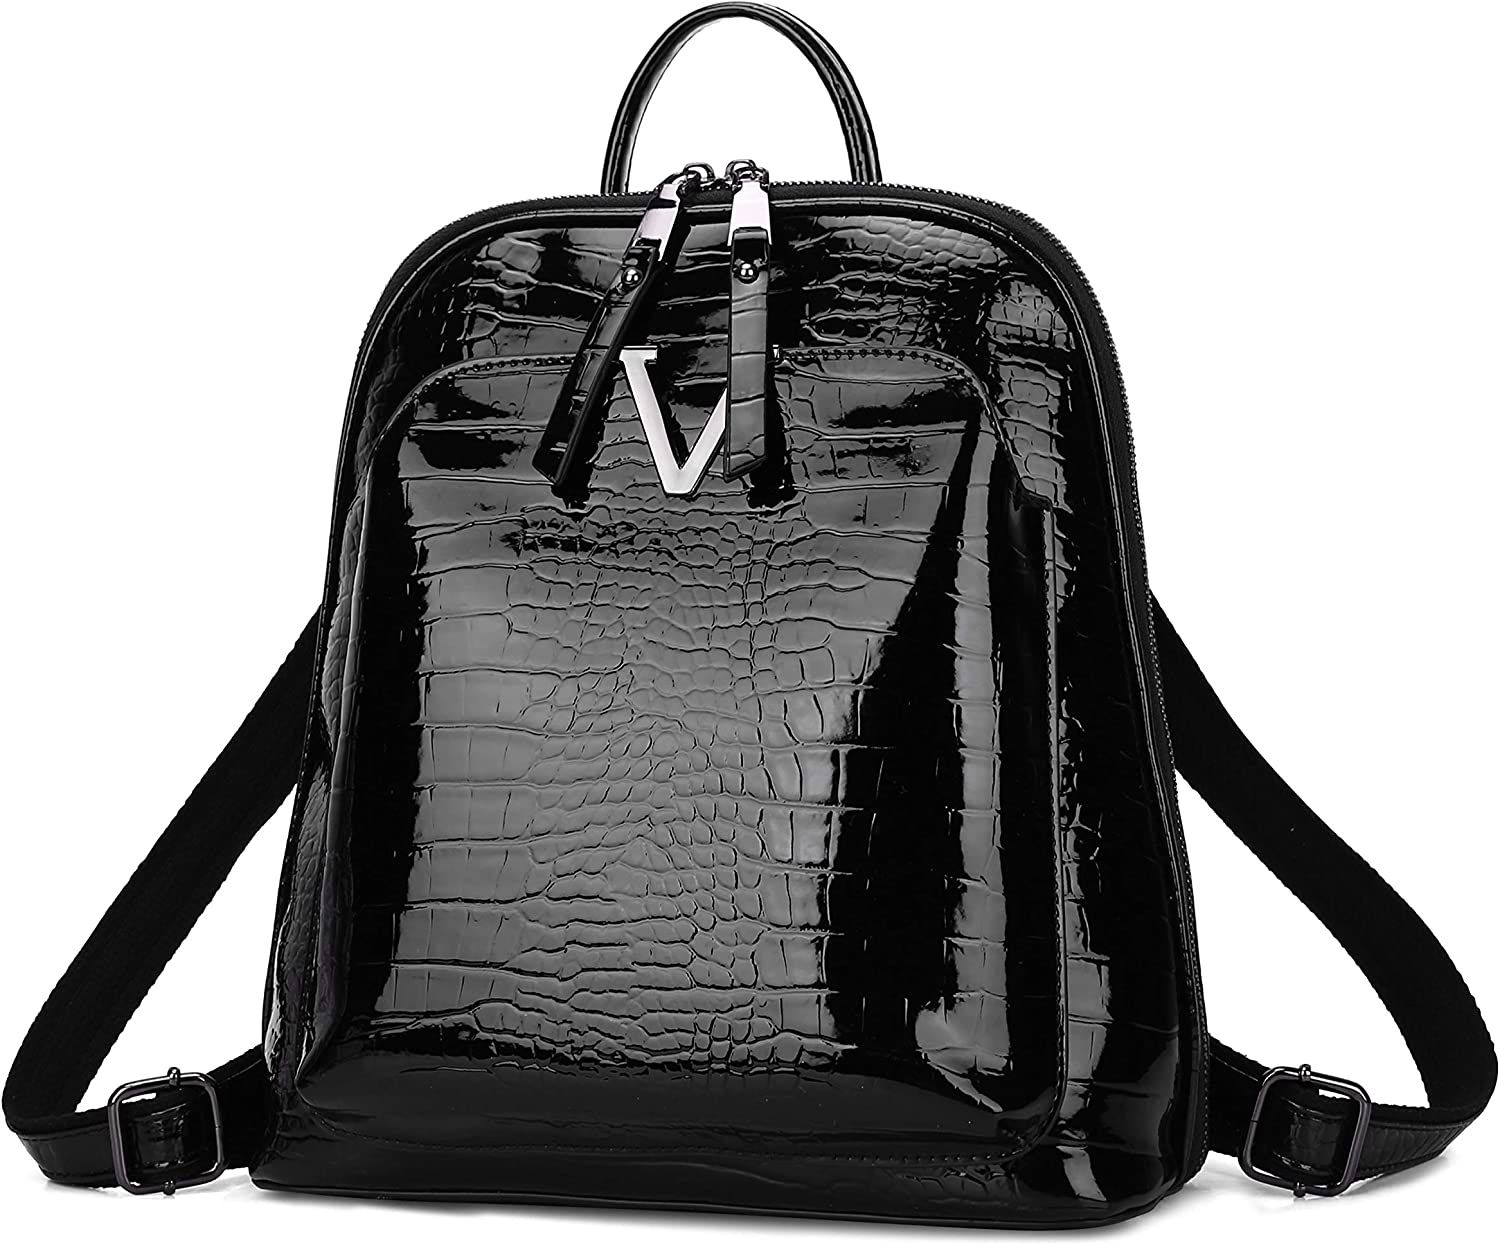 Backpack Purses Oklahoma City Mall for Women Angelkiss Ladies Leather Ranking TOP15 Ba Fashion PU